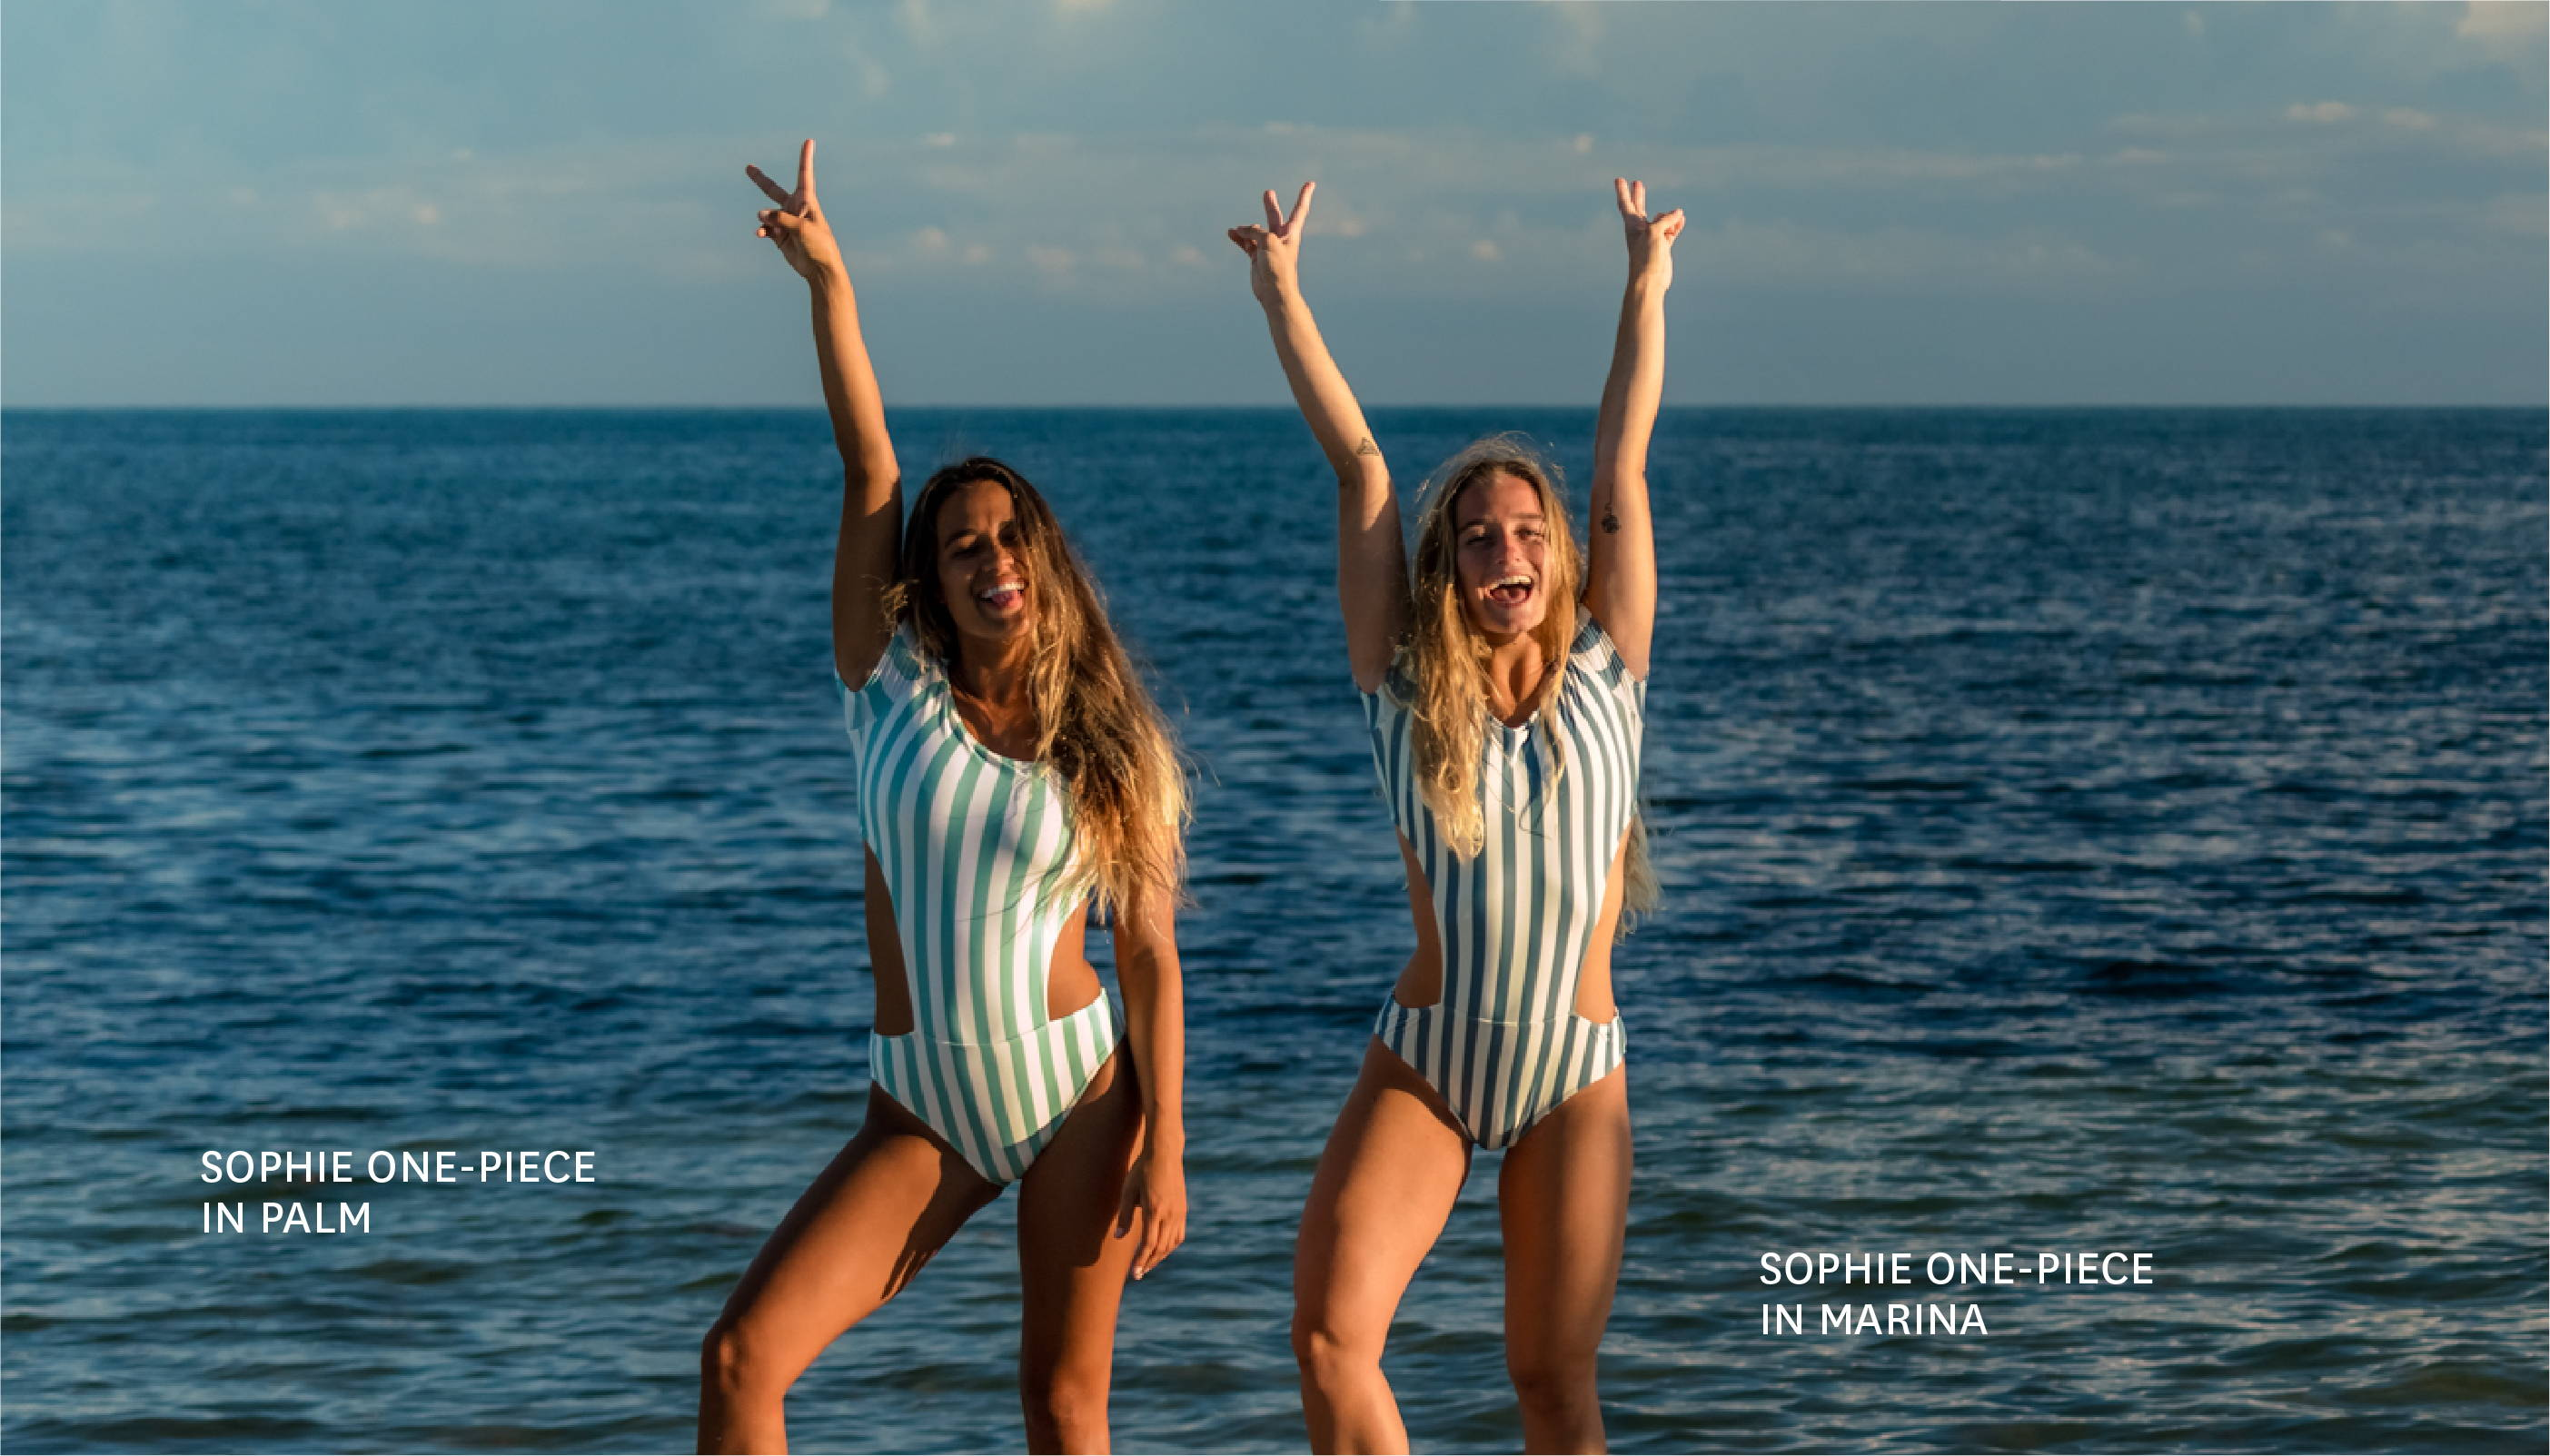 Get the SOPHIE ONE-PIECE in AIRLIE (PALM)!